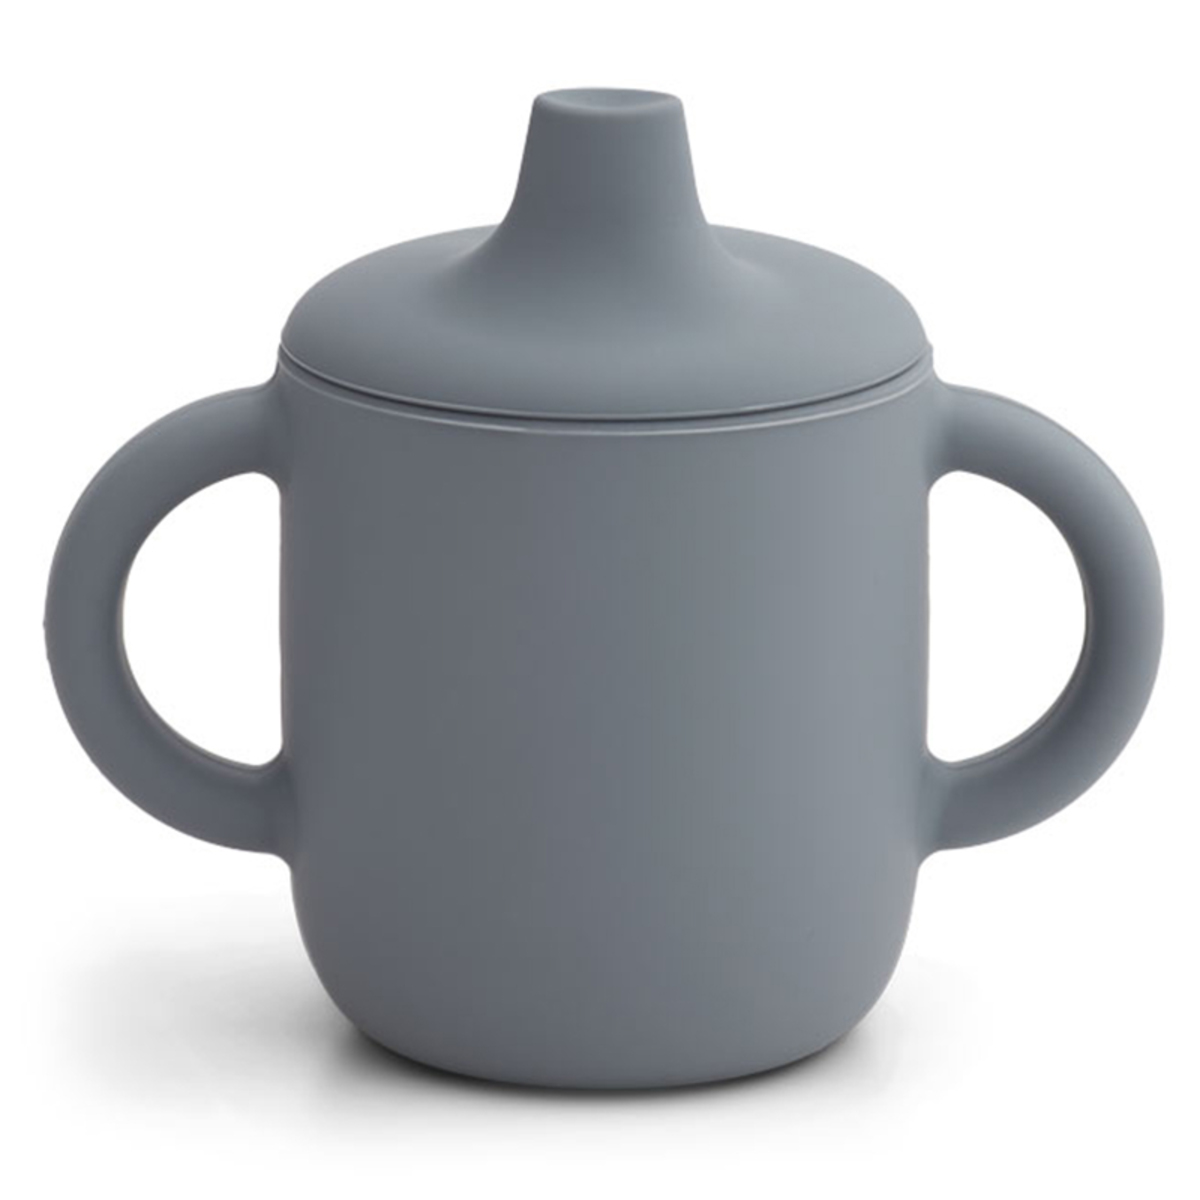 Tasse & Verre Tasse d'Apprentissage Neil Blue Wave - 150 ml Tasse d'Apprentissage Neil Blue Wave - 150 ml